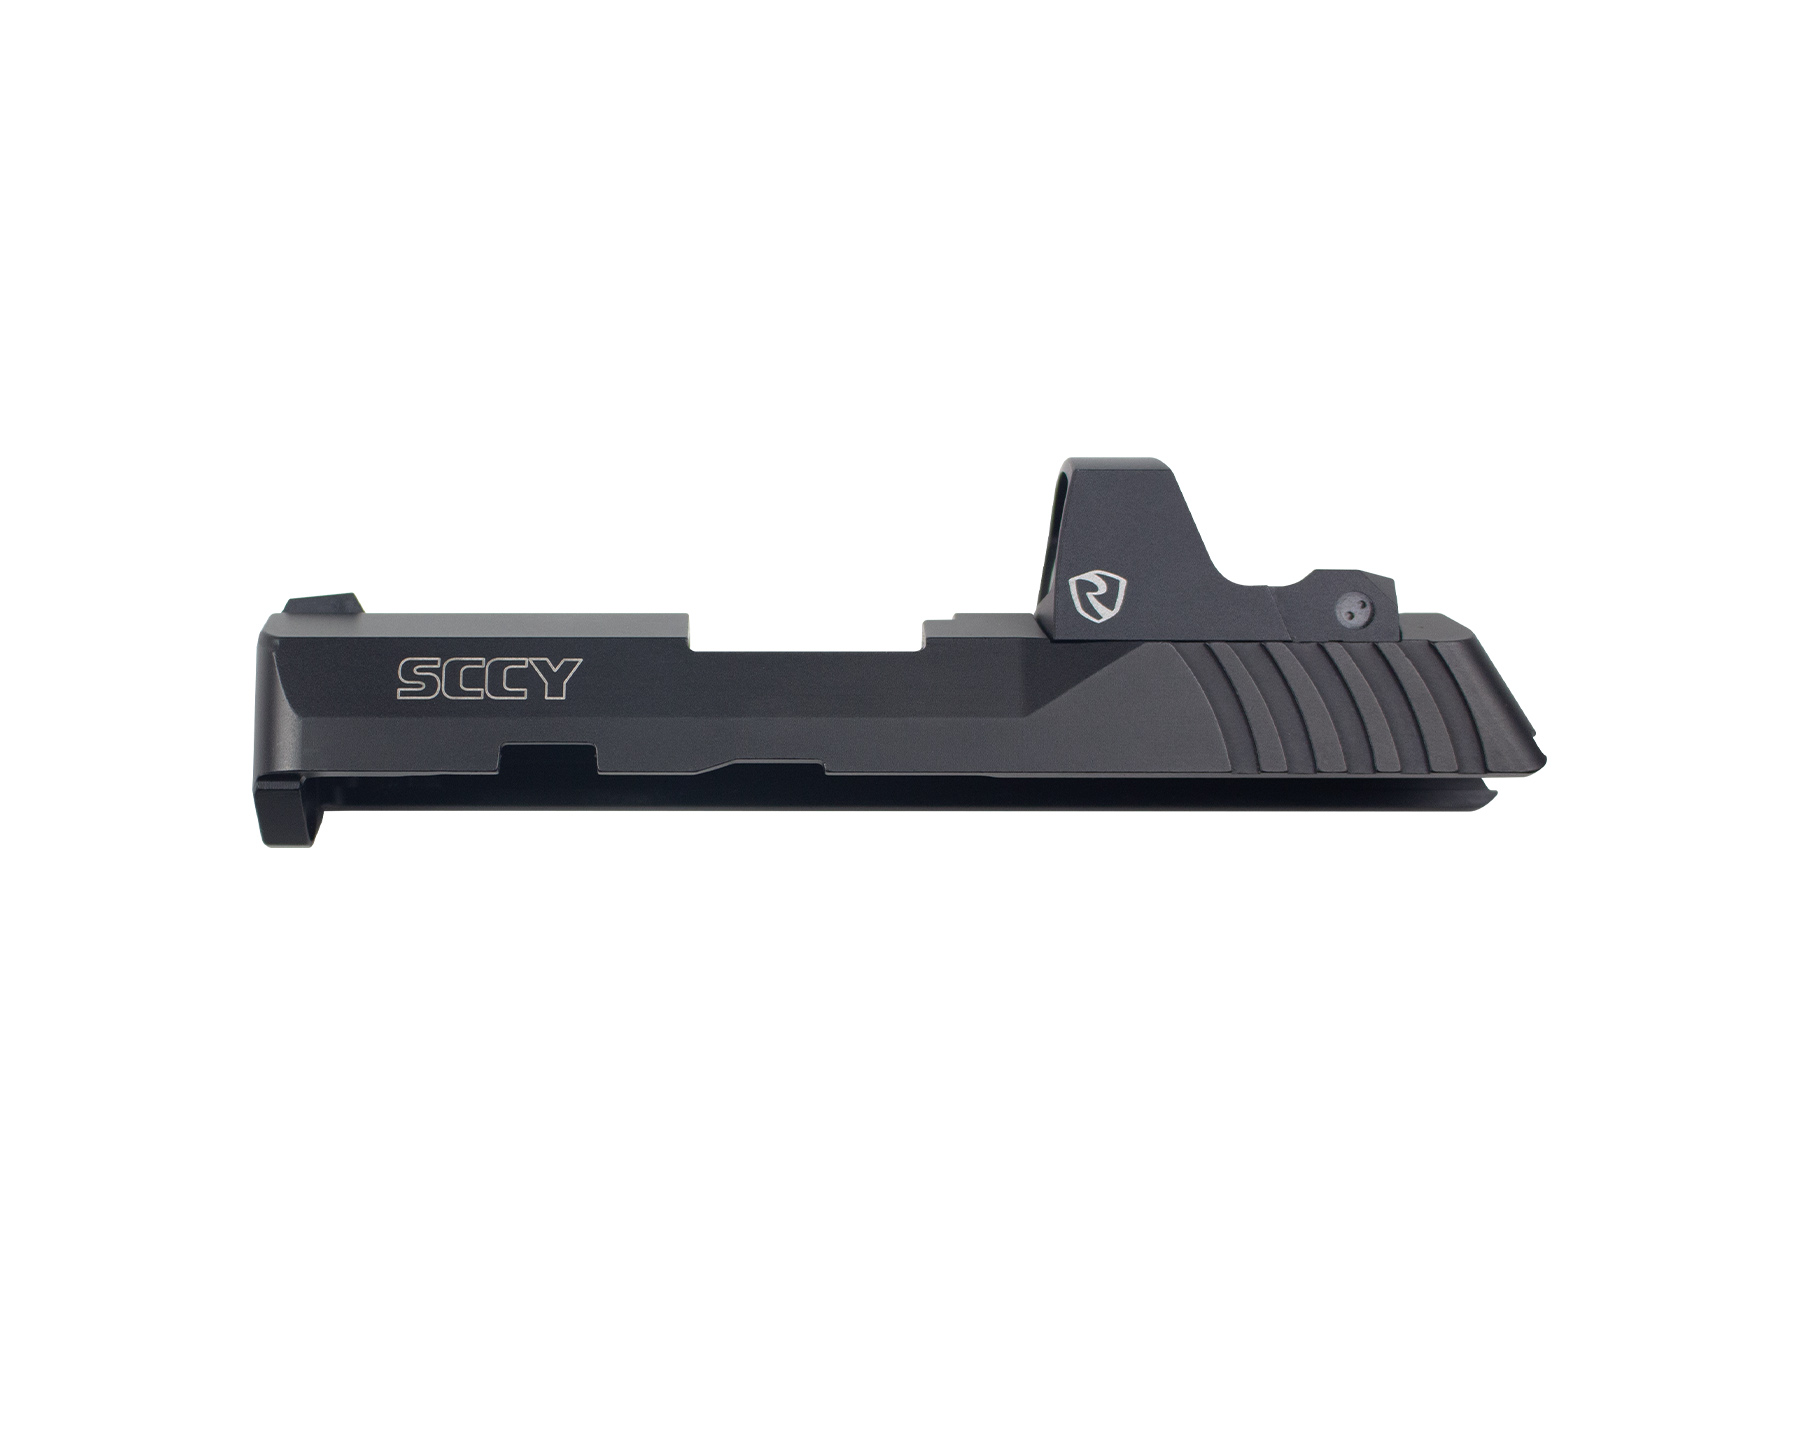 sccy 9mm double stack compact optics cut slides